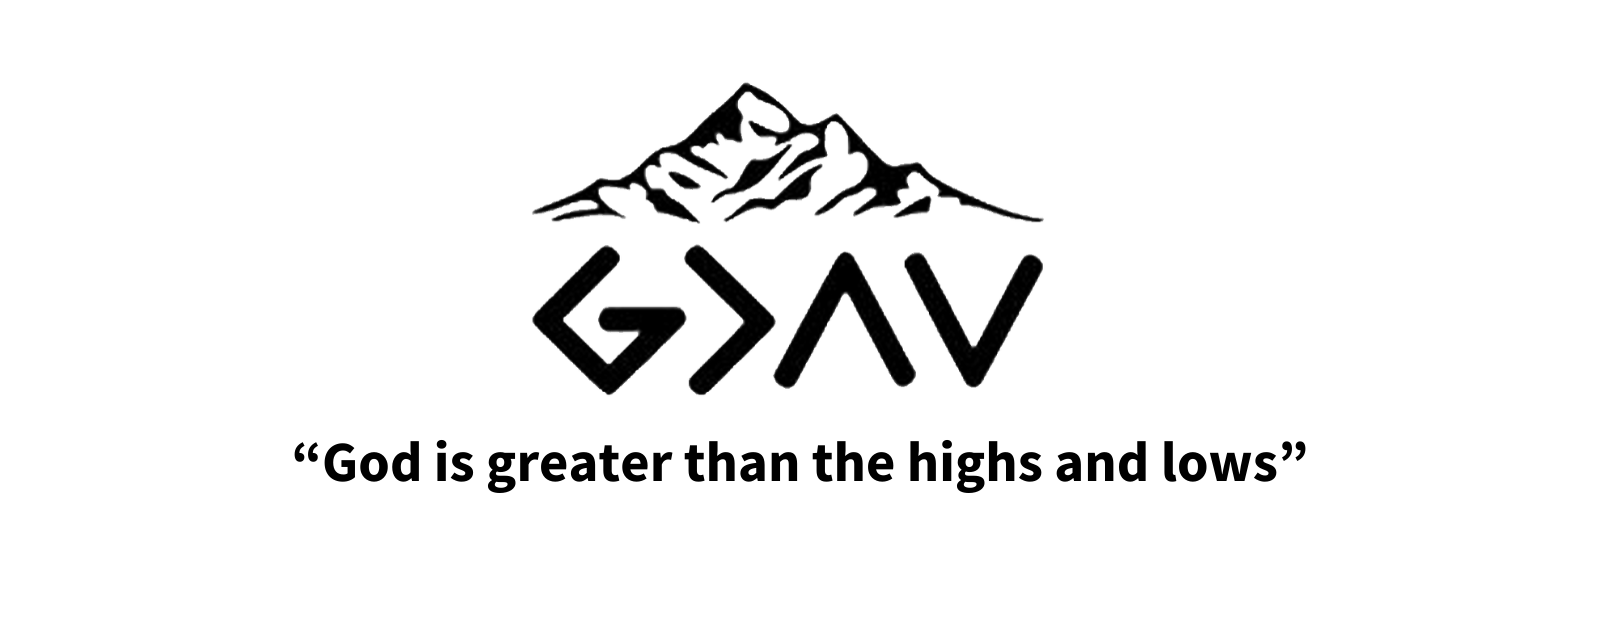 "The Meaning Behind the Symbol ""God is greater than the highs and lows"""